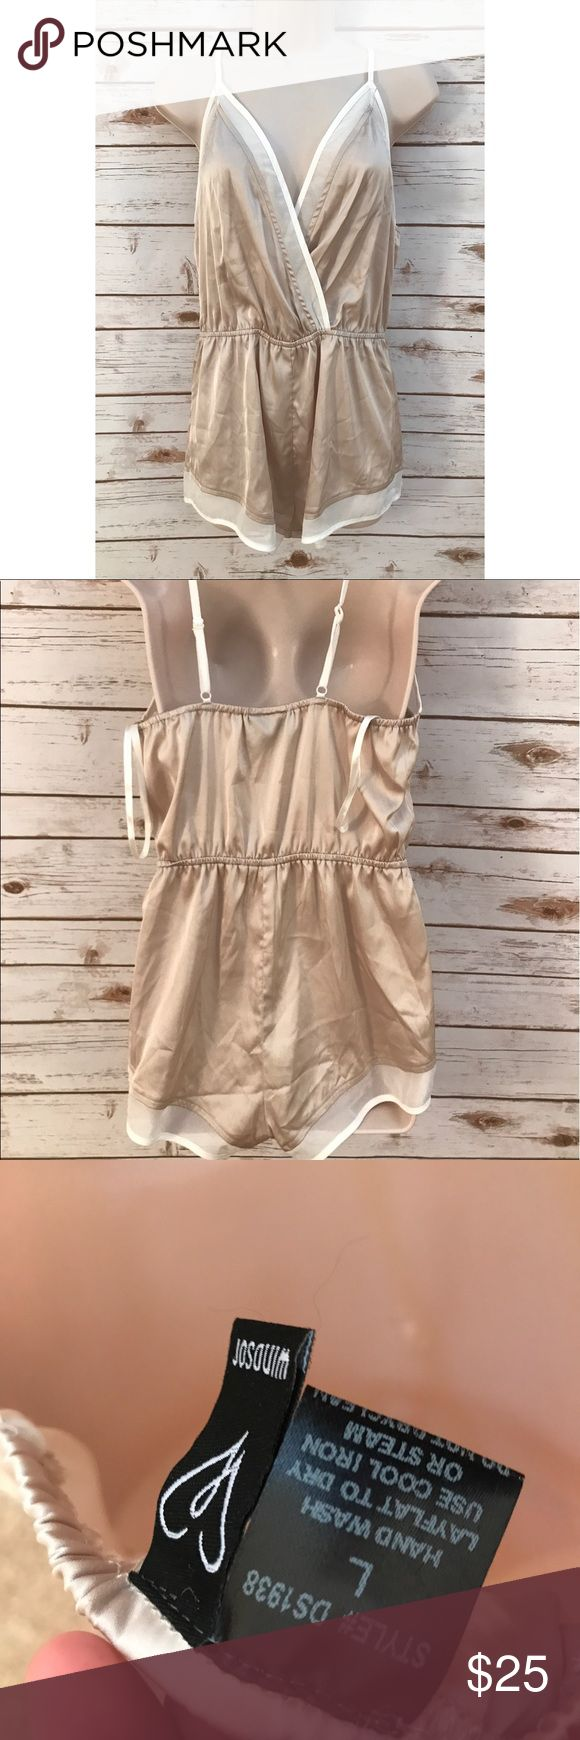 ✨NEW✨ Windsor Silk Beige & White Playsuit • New without tags. Only worn once to show fit as I wear a large. • Beautiful silk material. • Adjustable straps • Beige and Creme white hues. • Bust is 16' laying flat. • Size is LARGE. Windsor Dresses Mini